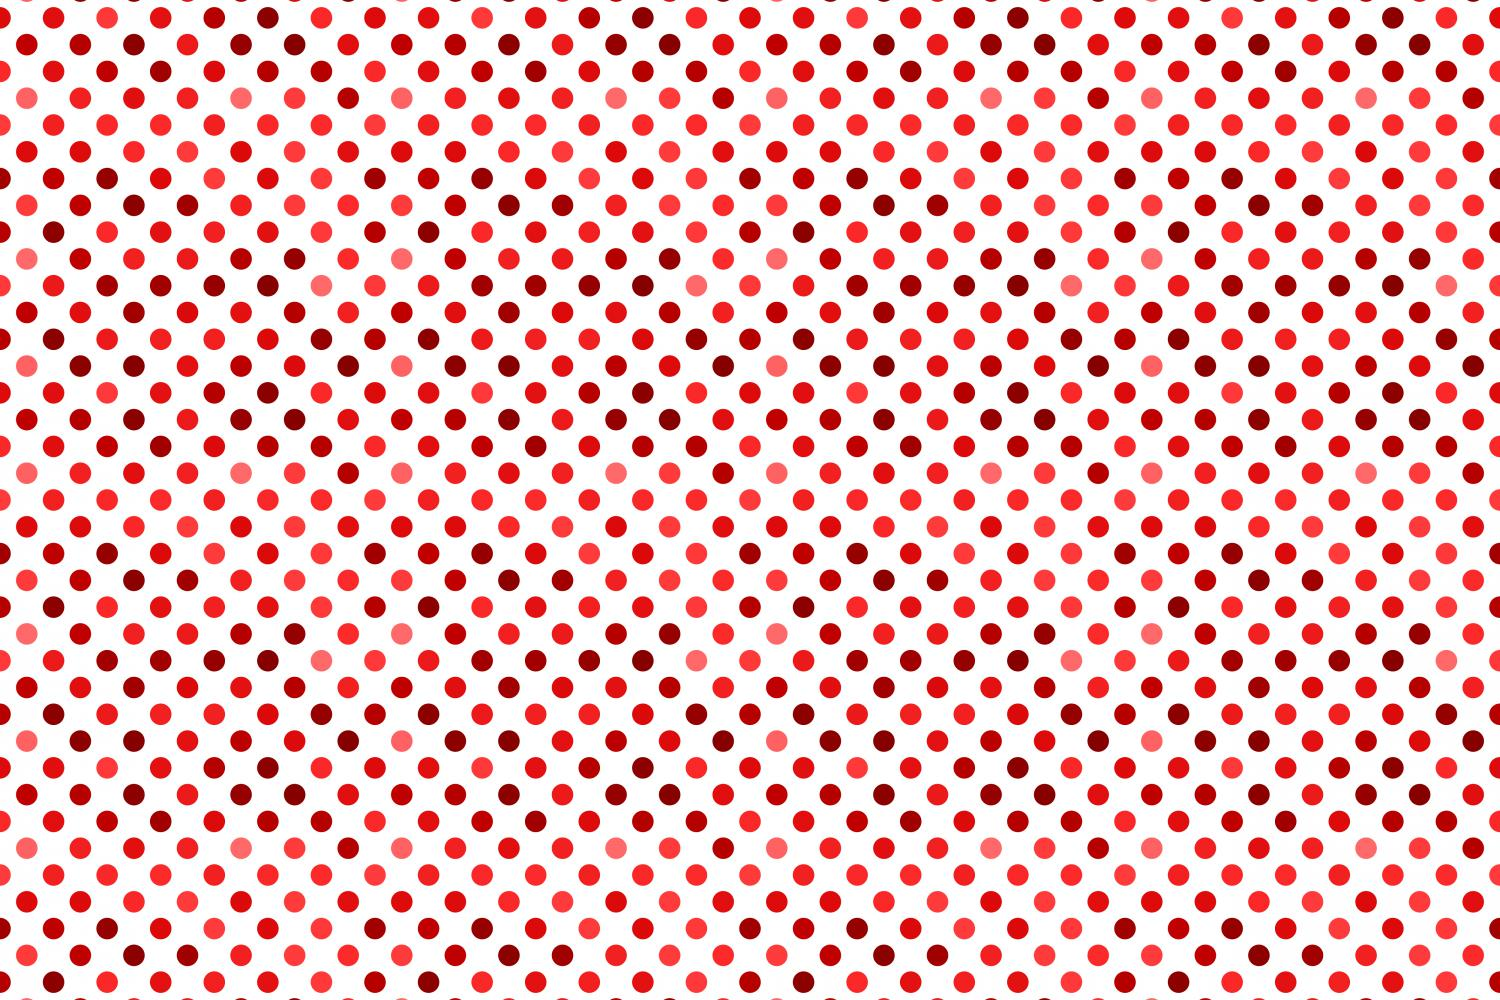 24 Seamless Red Dot Patterns example image 4